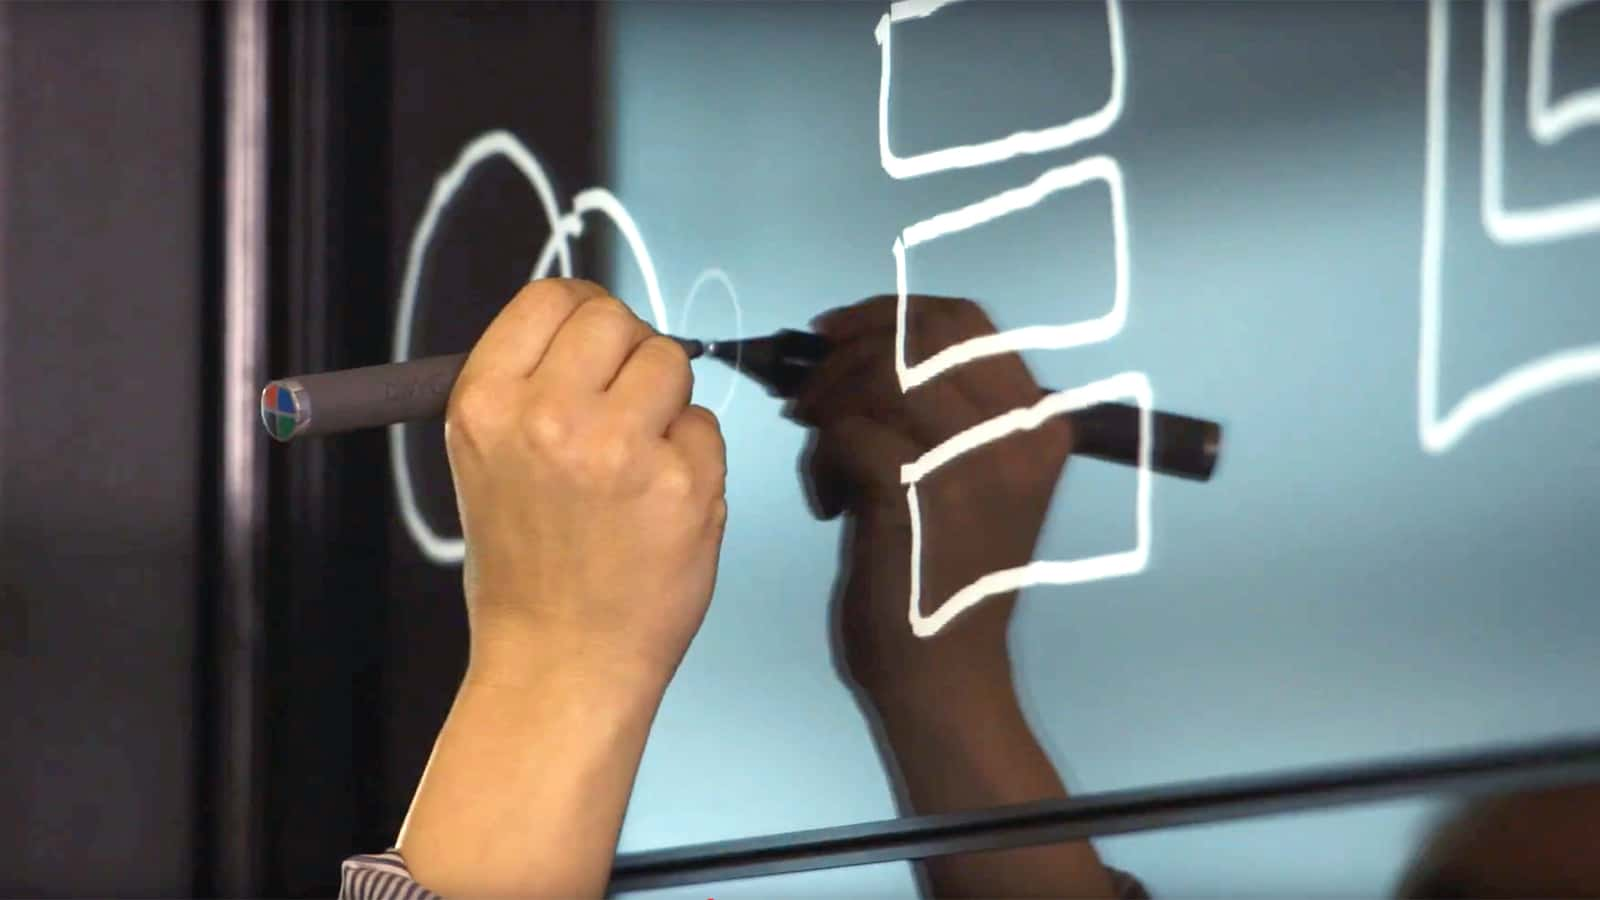 Interactive wall technology at the HPE Customer Engagement Center in New York City.